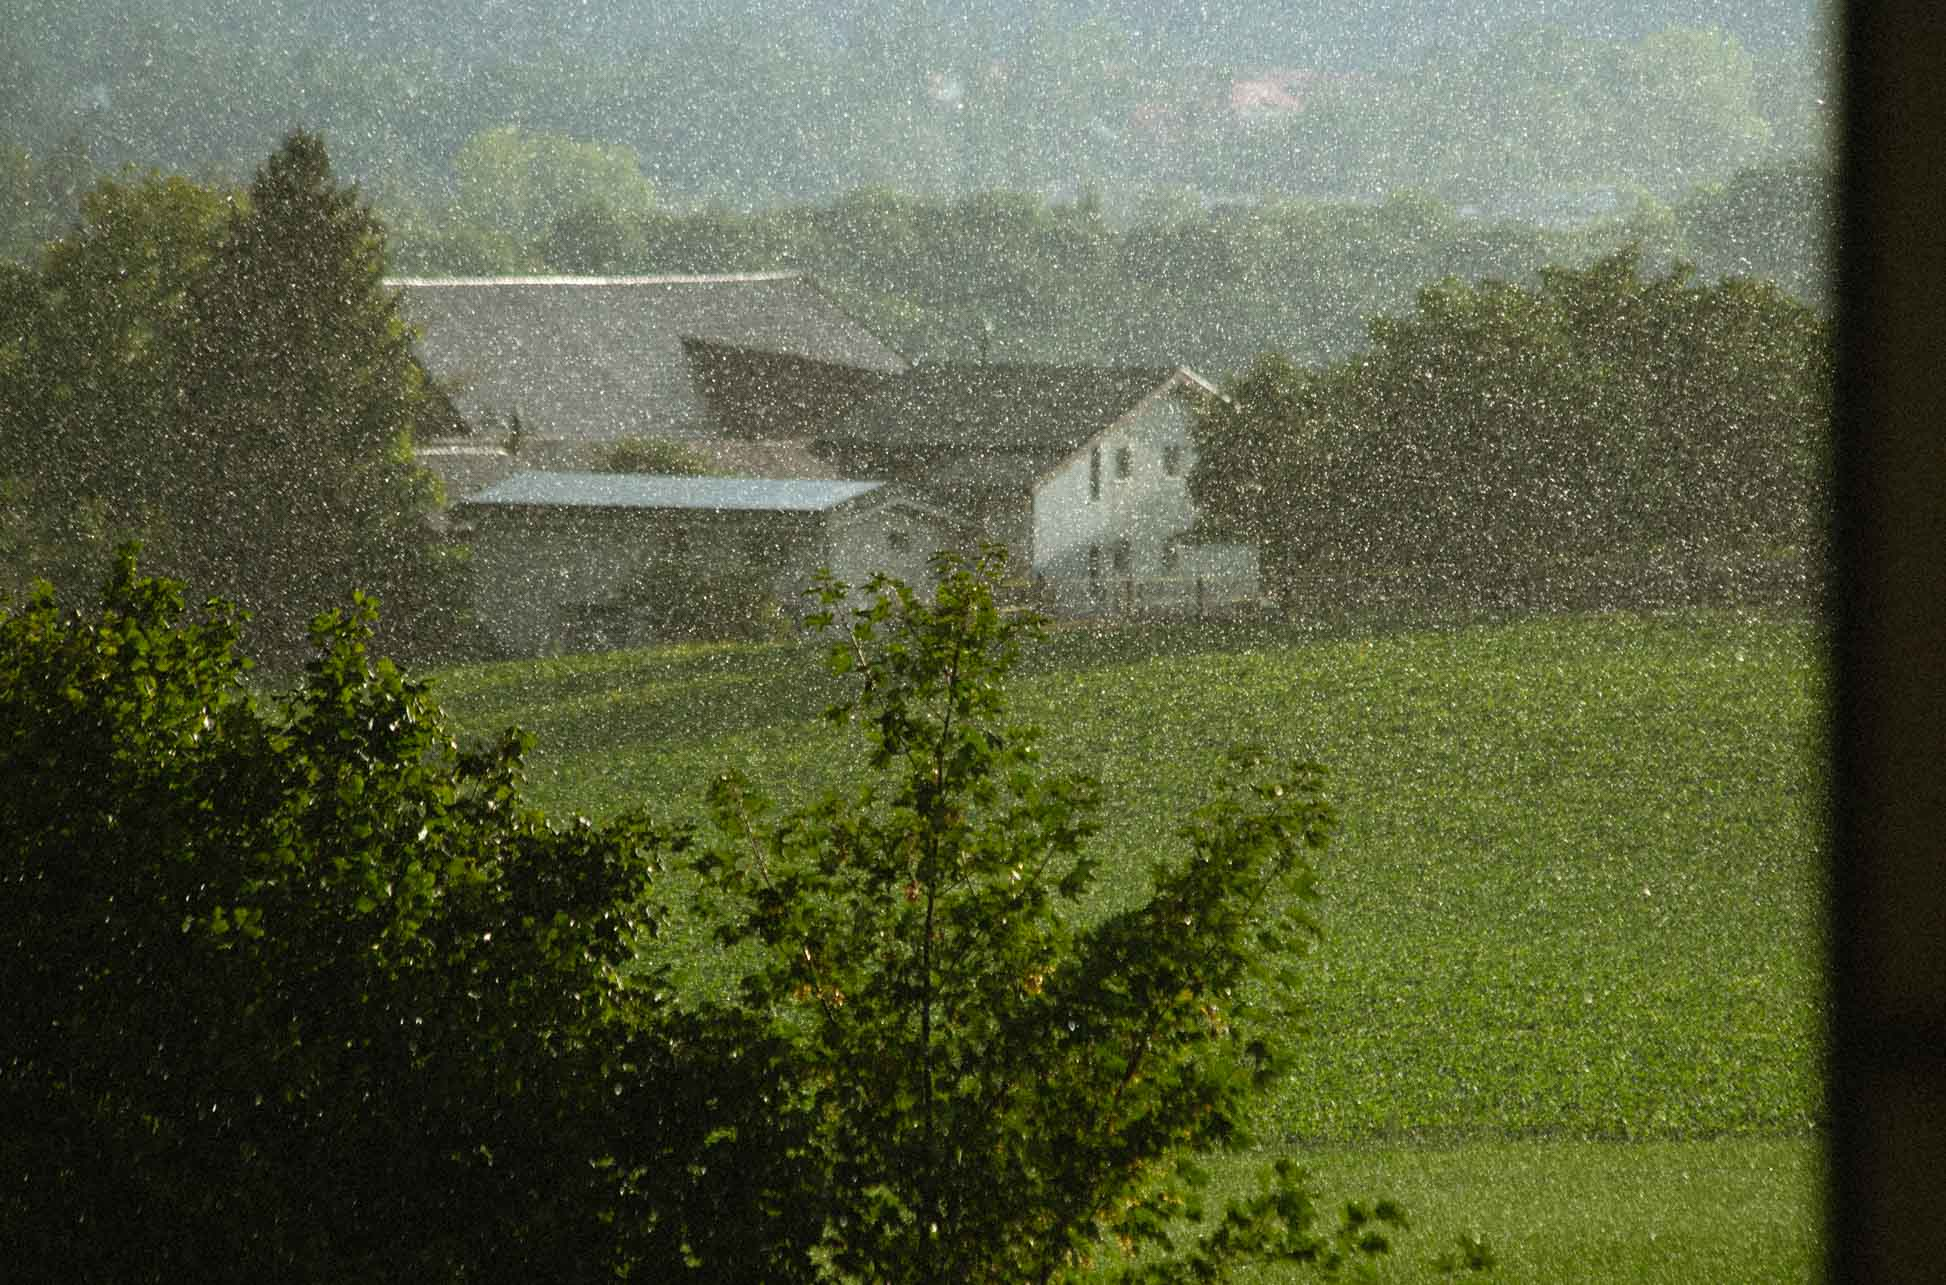 why film grain if you could just use the rain